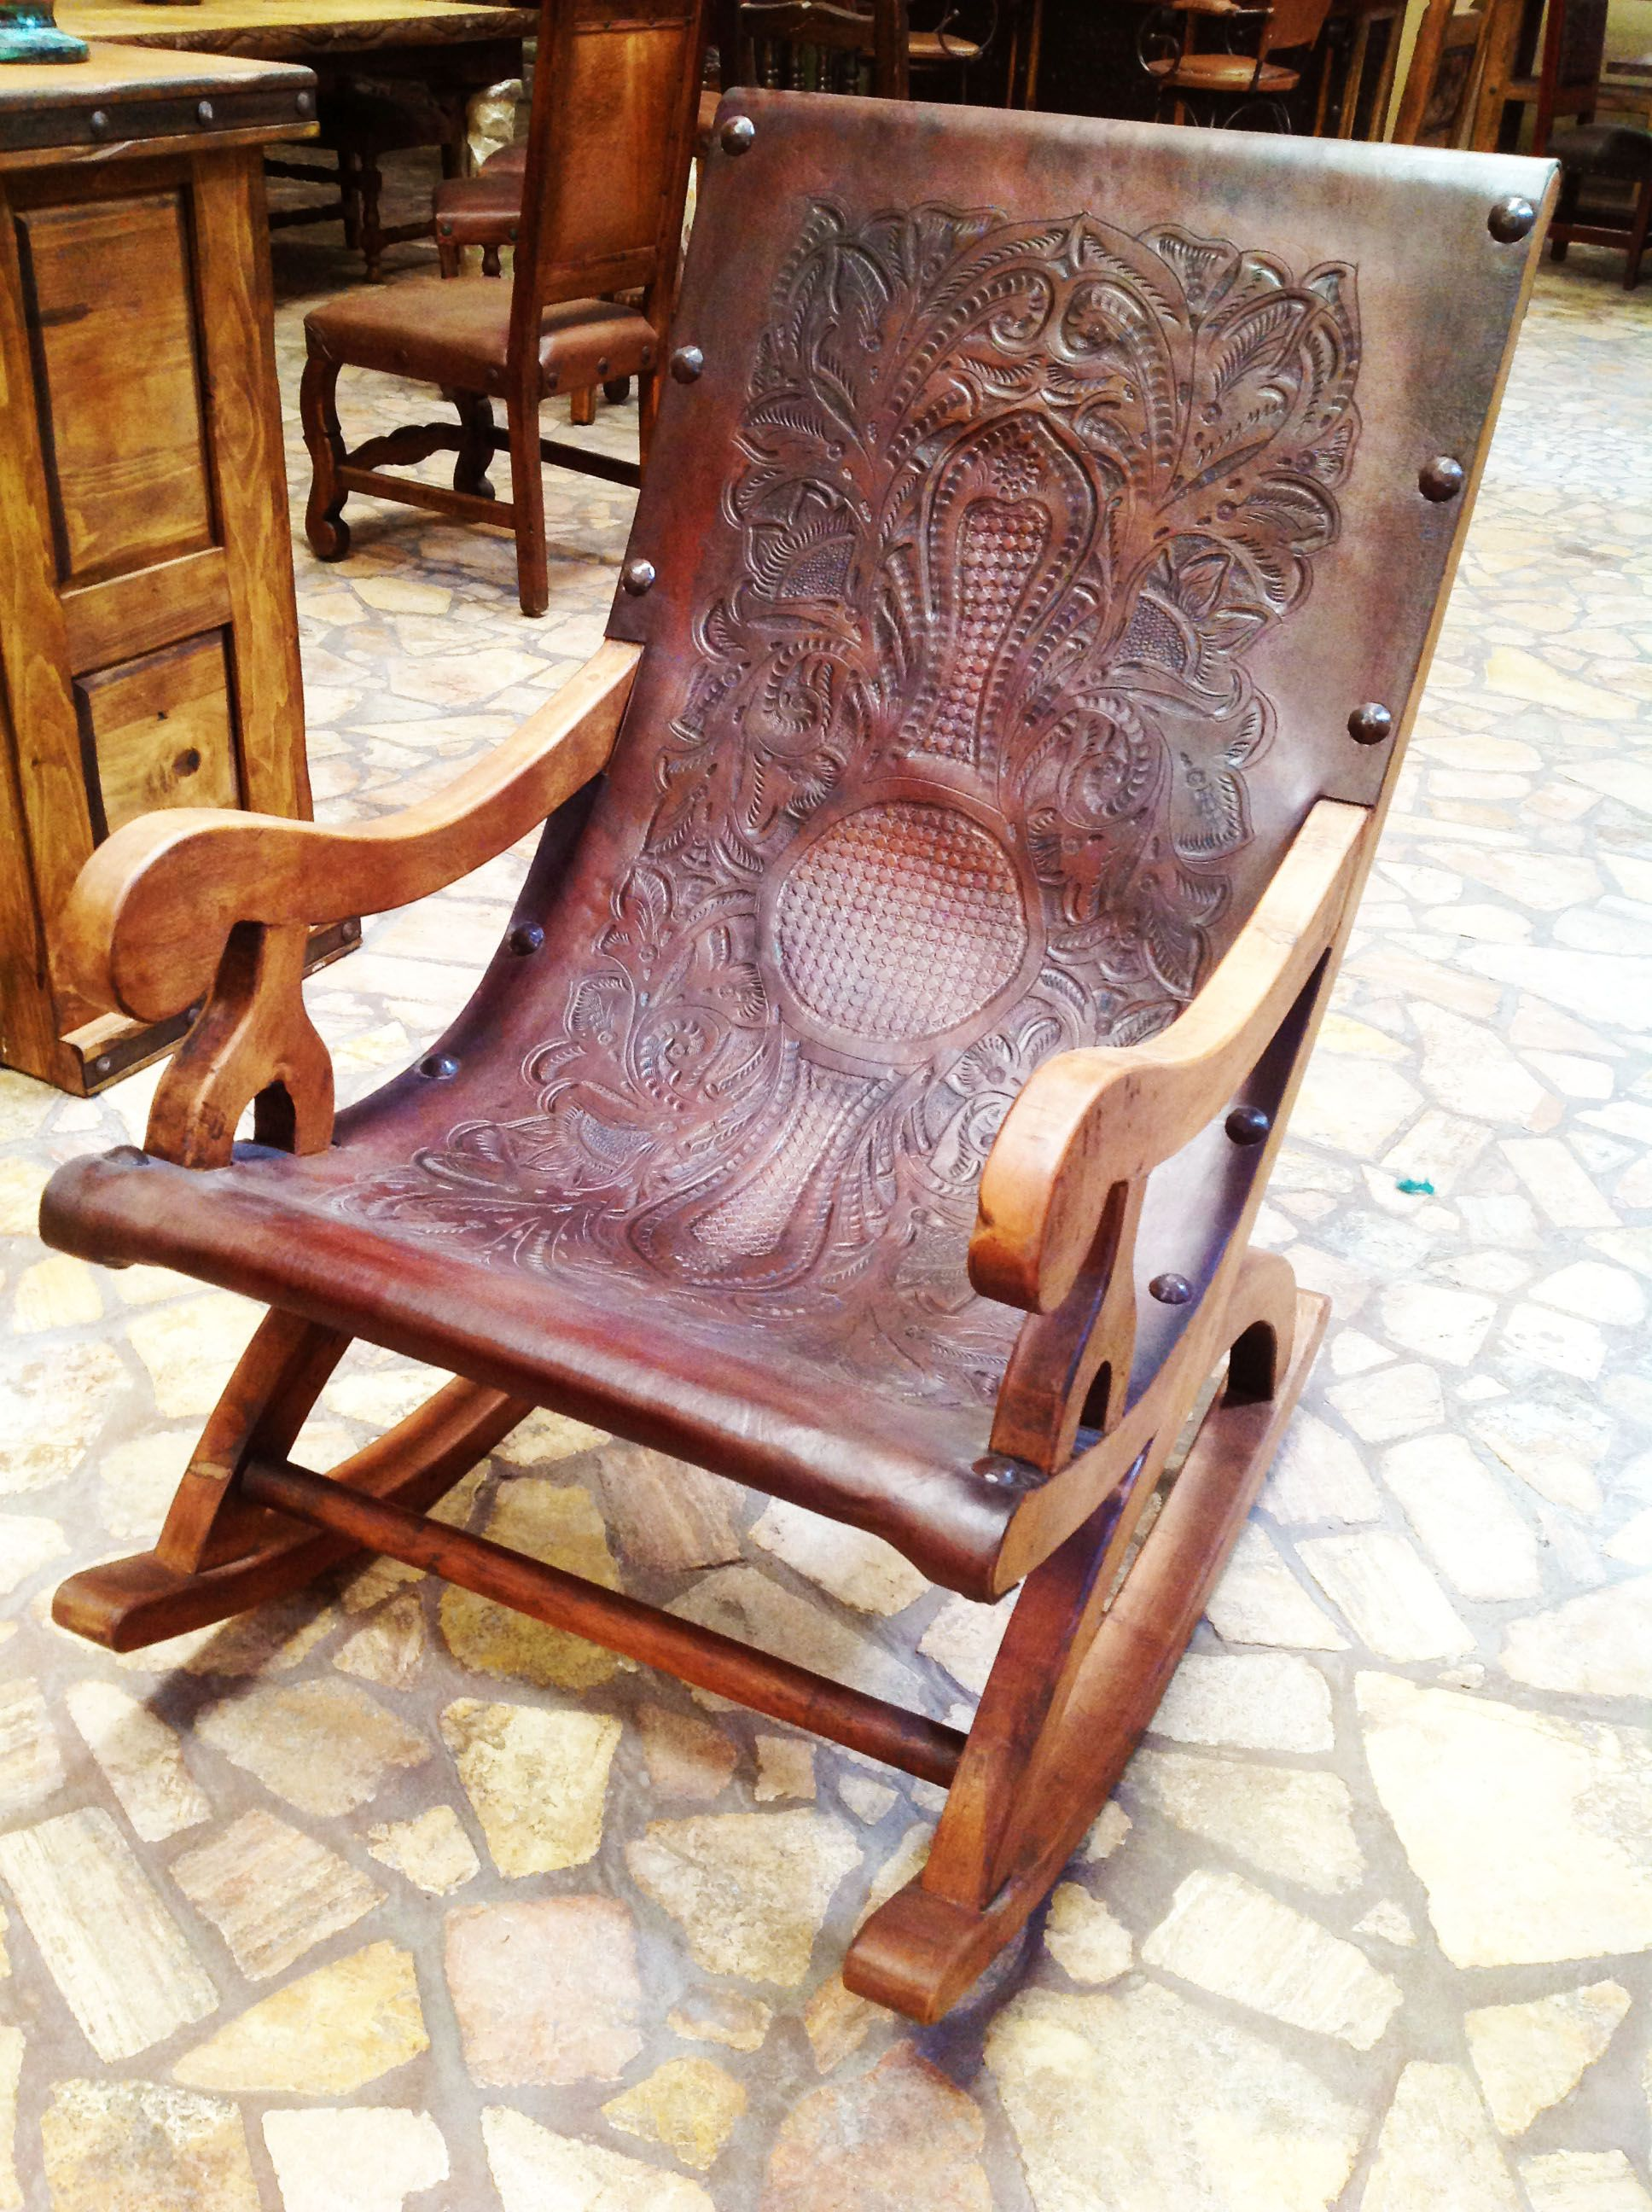 Rustic Leather Chairs Hand Tooled Leather And Hand Carved Solid Wood Chair By The Rustic